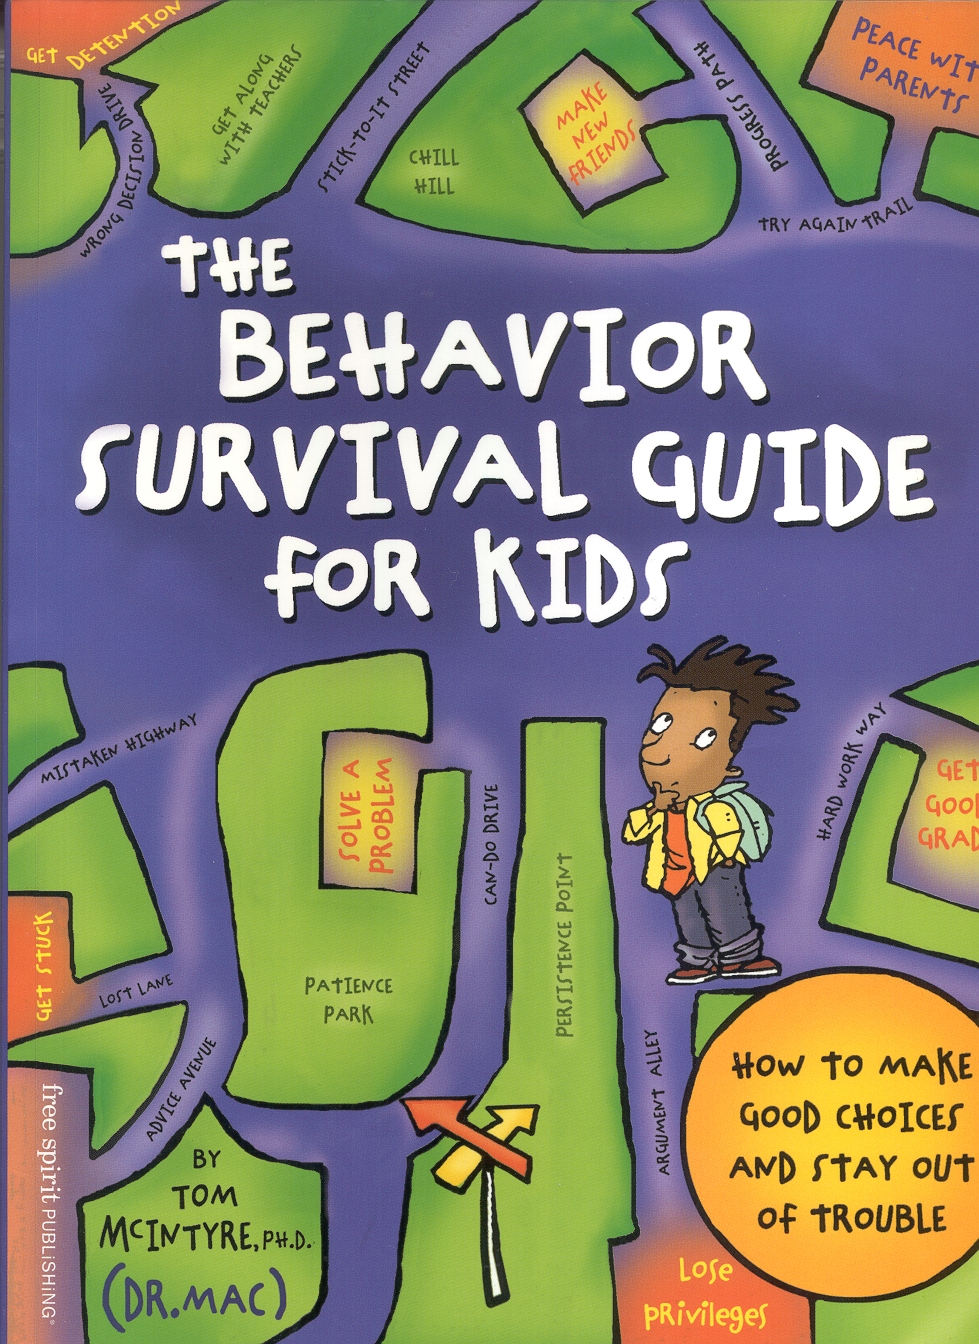 Dr. Mac's Behavior Survival Guide